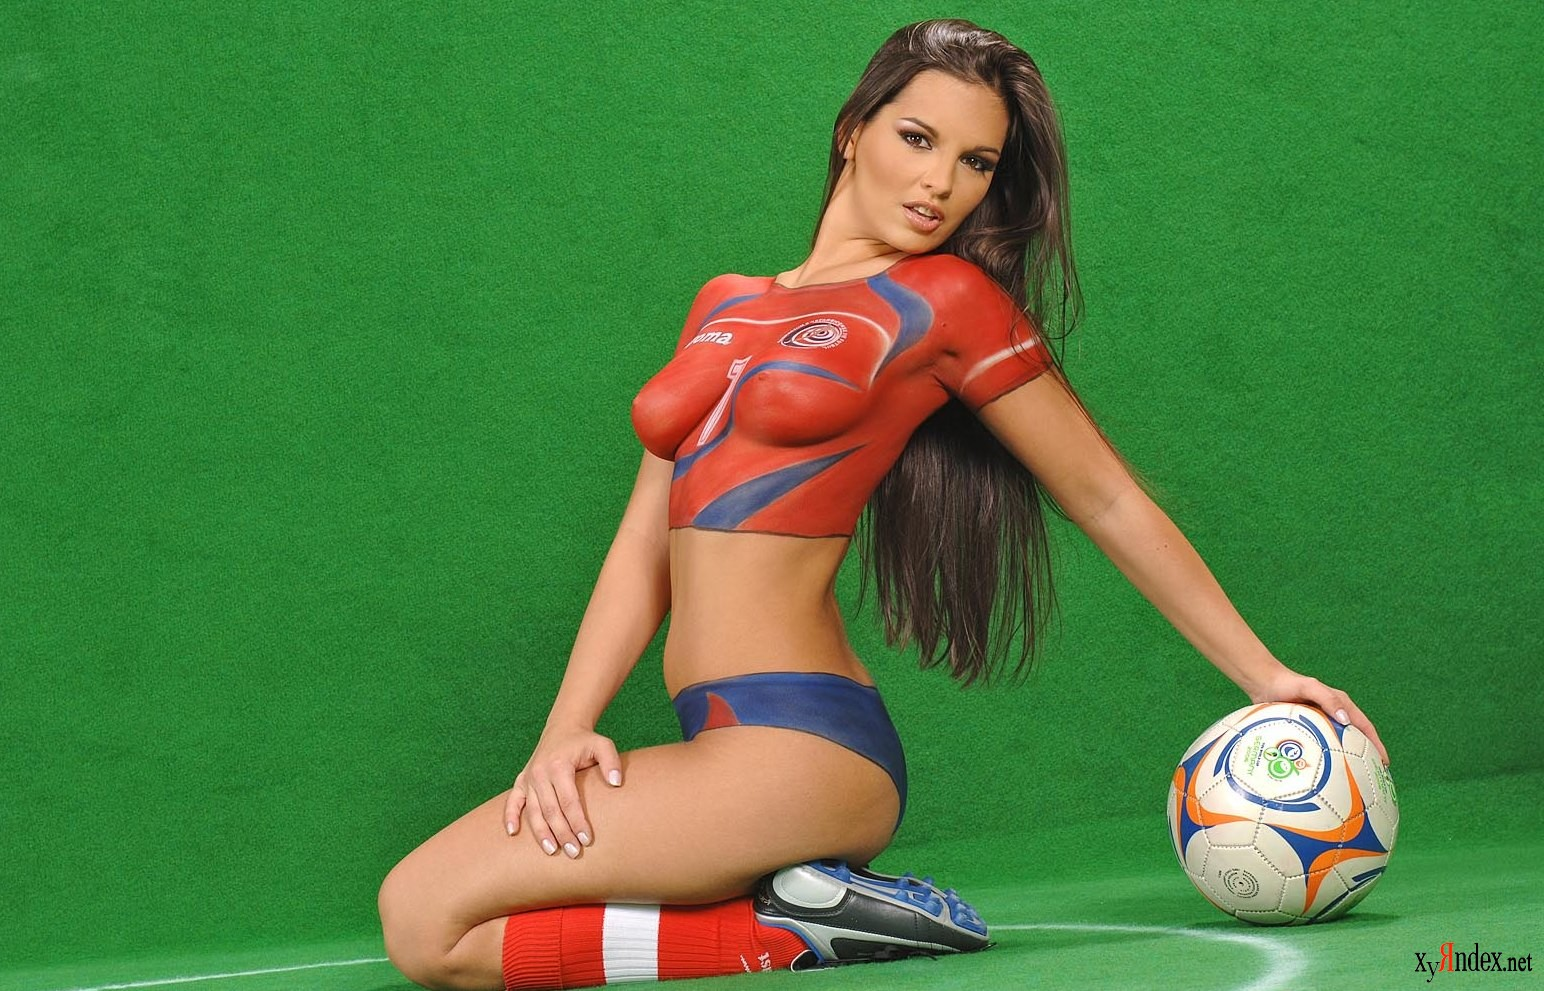 Two sexy girls playing photo games and a soccer field with stadium sea clipart cartoons by vectortoons